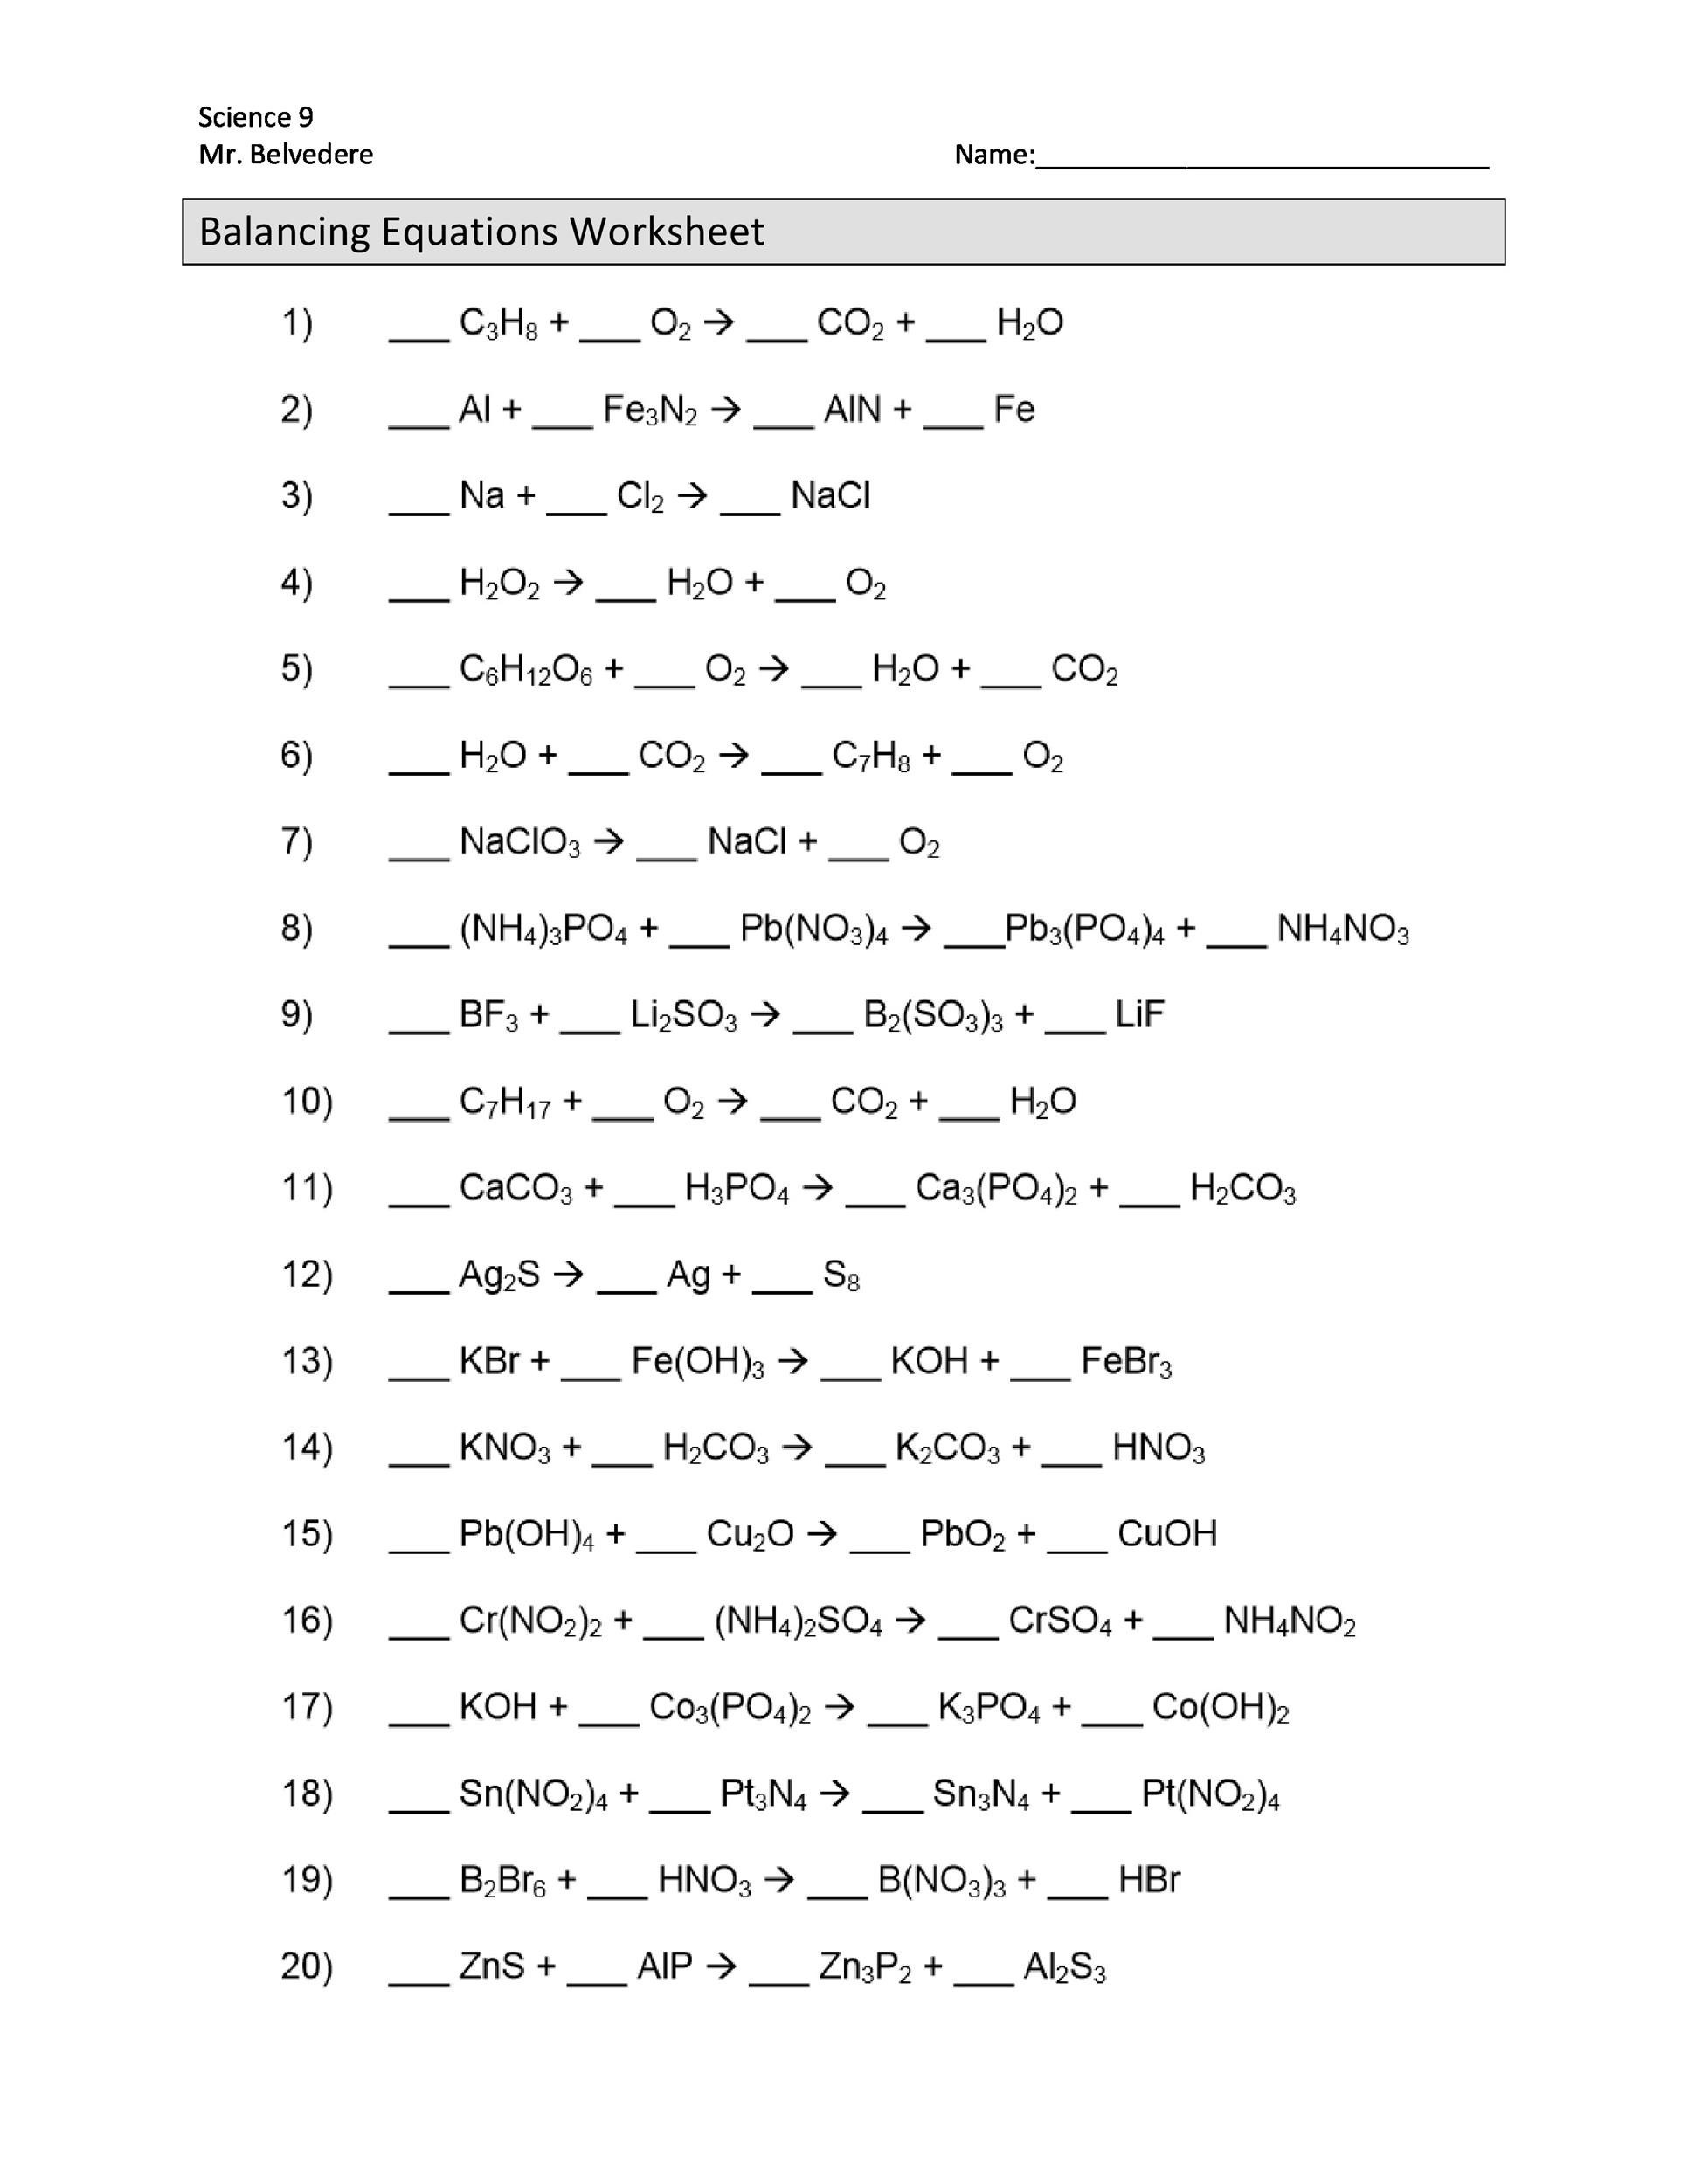 Worksheets Balancing Reactions Worksheet 49 balancing chemical equations worksheets with answers answers